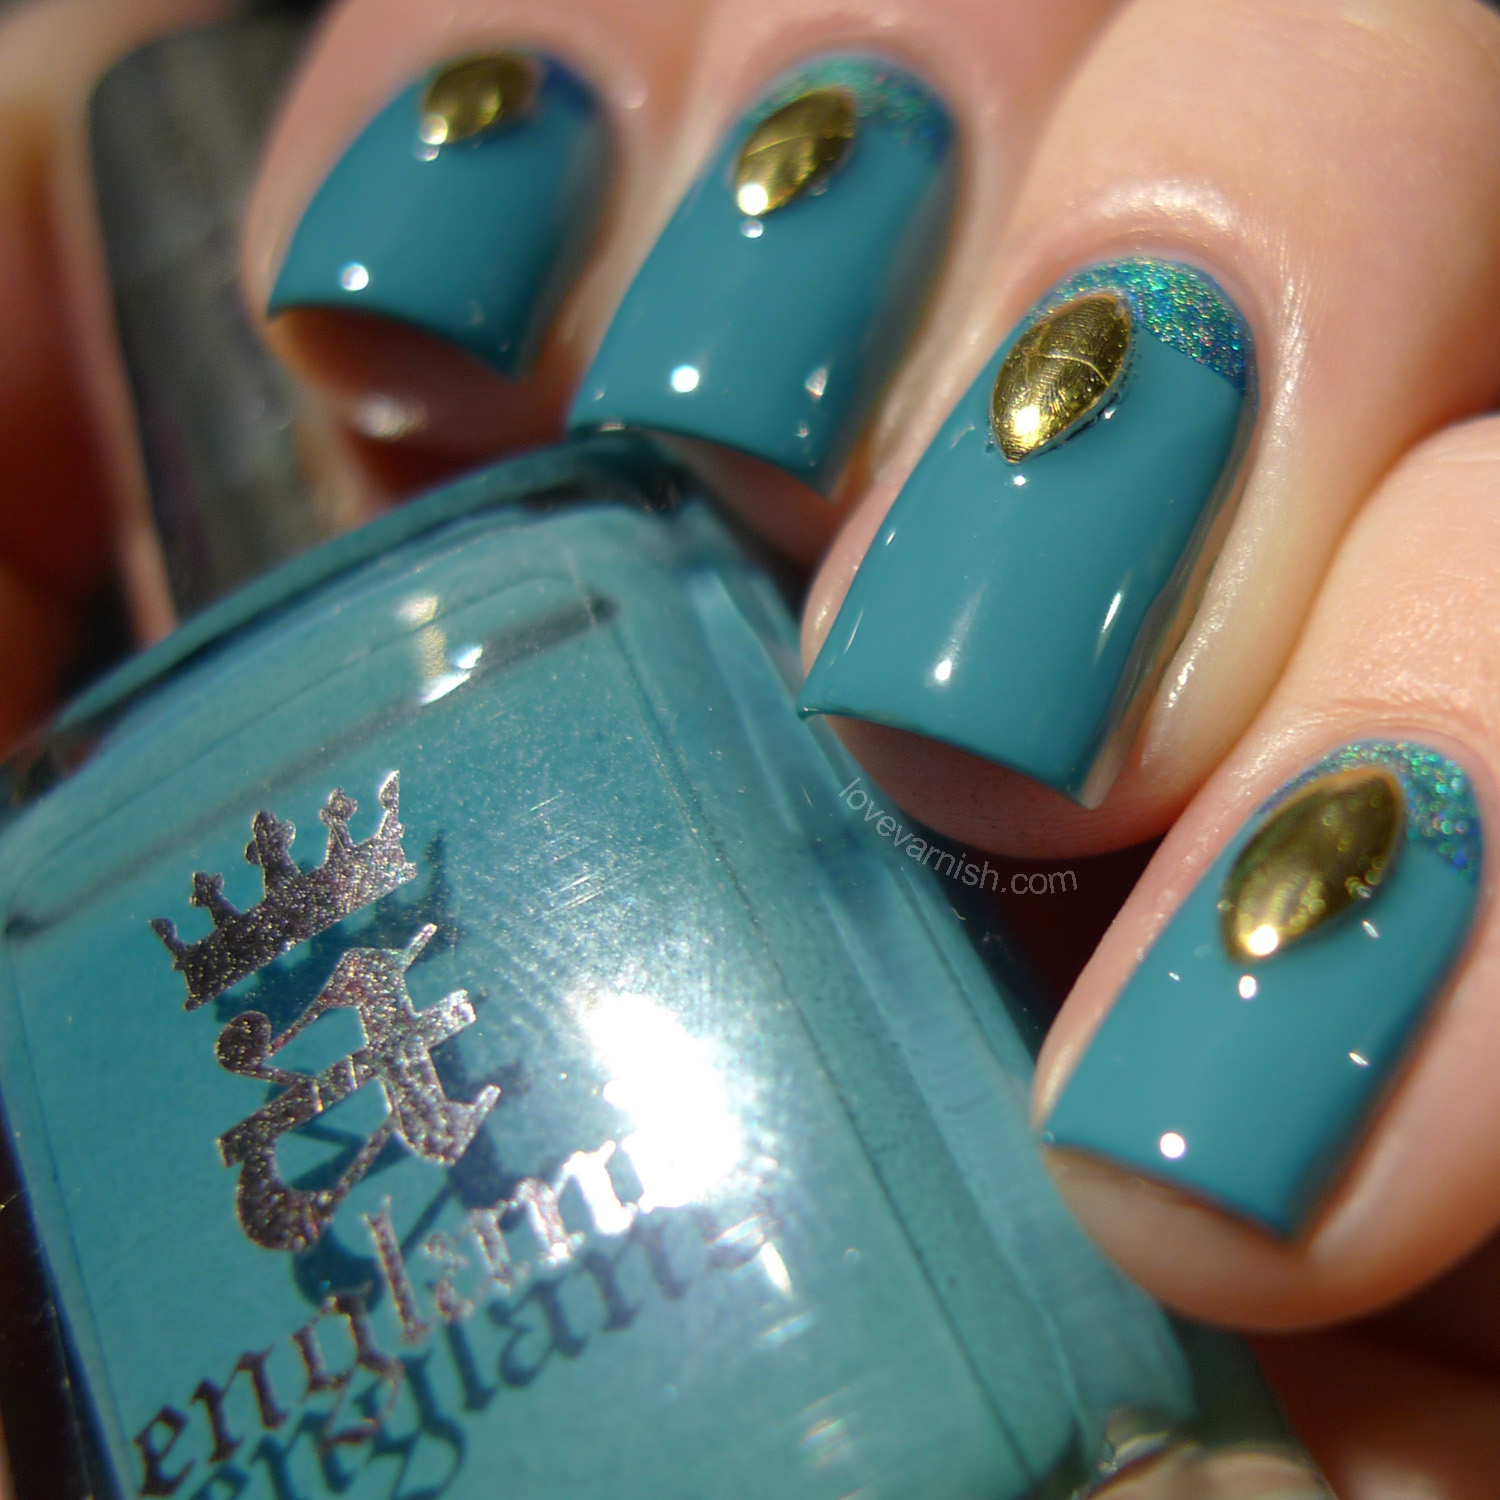 a england Galahad and China Glaze DV8 nail art